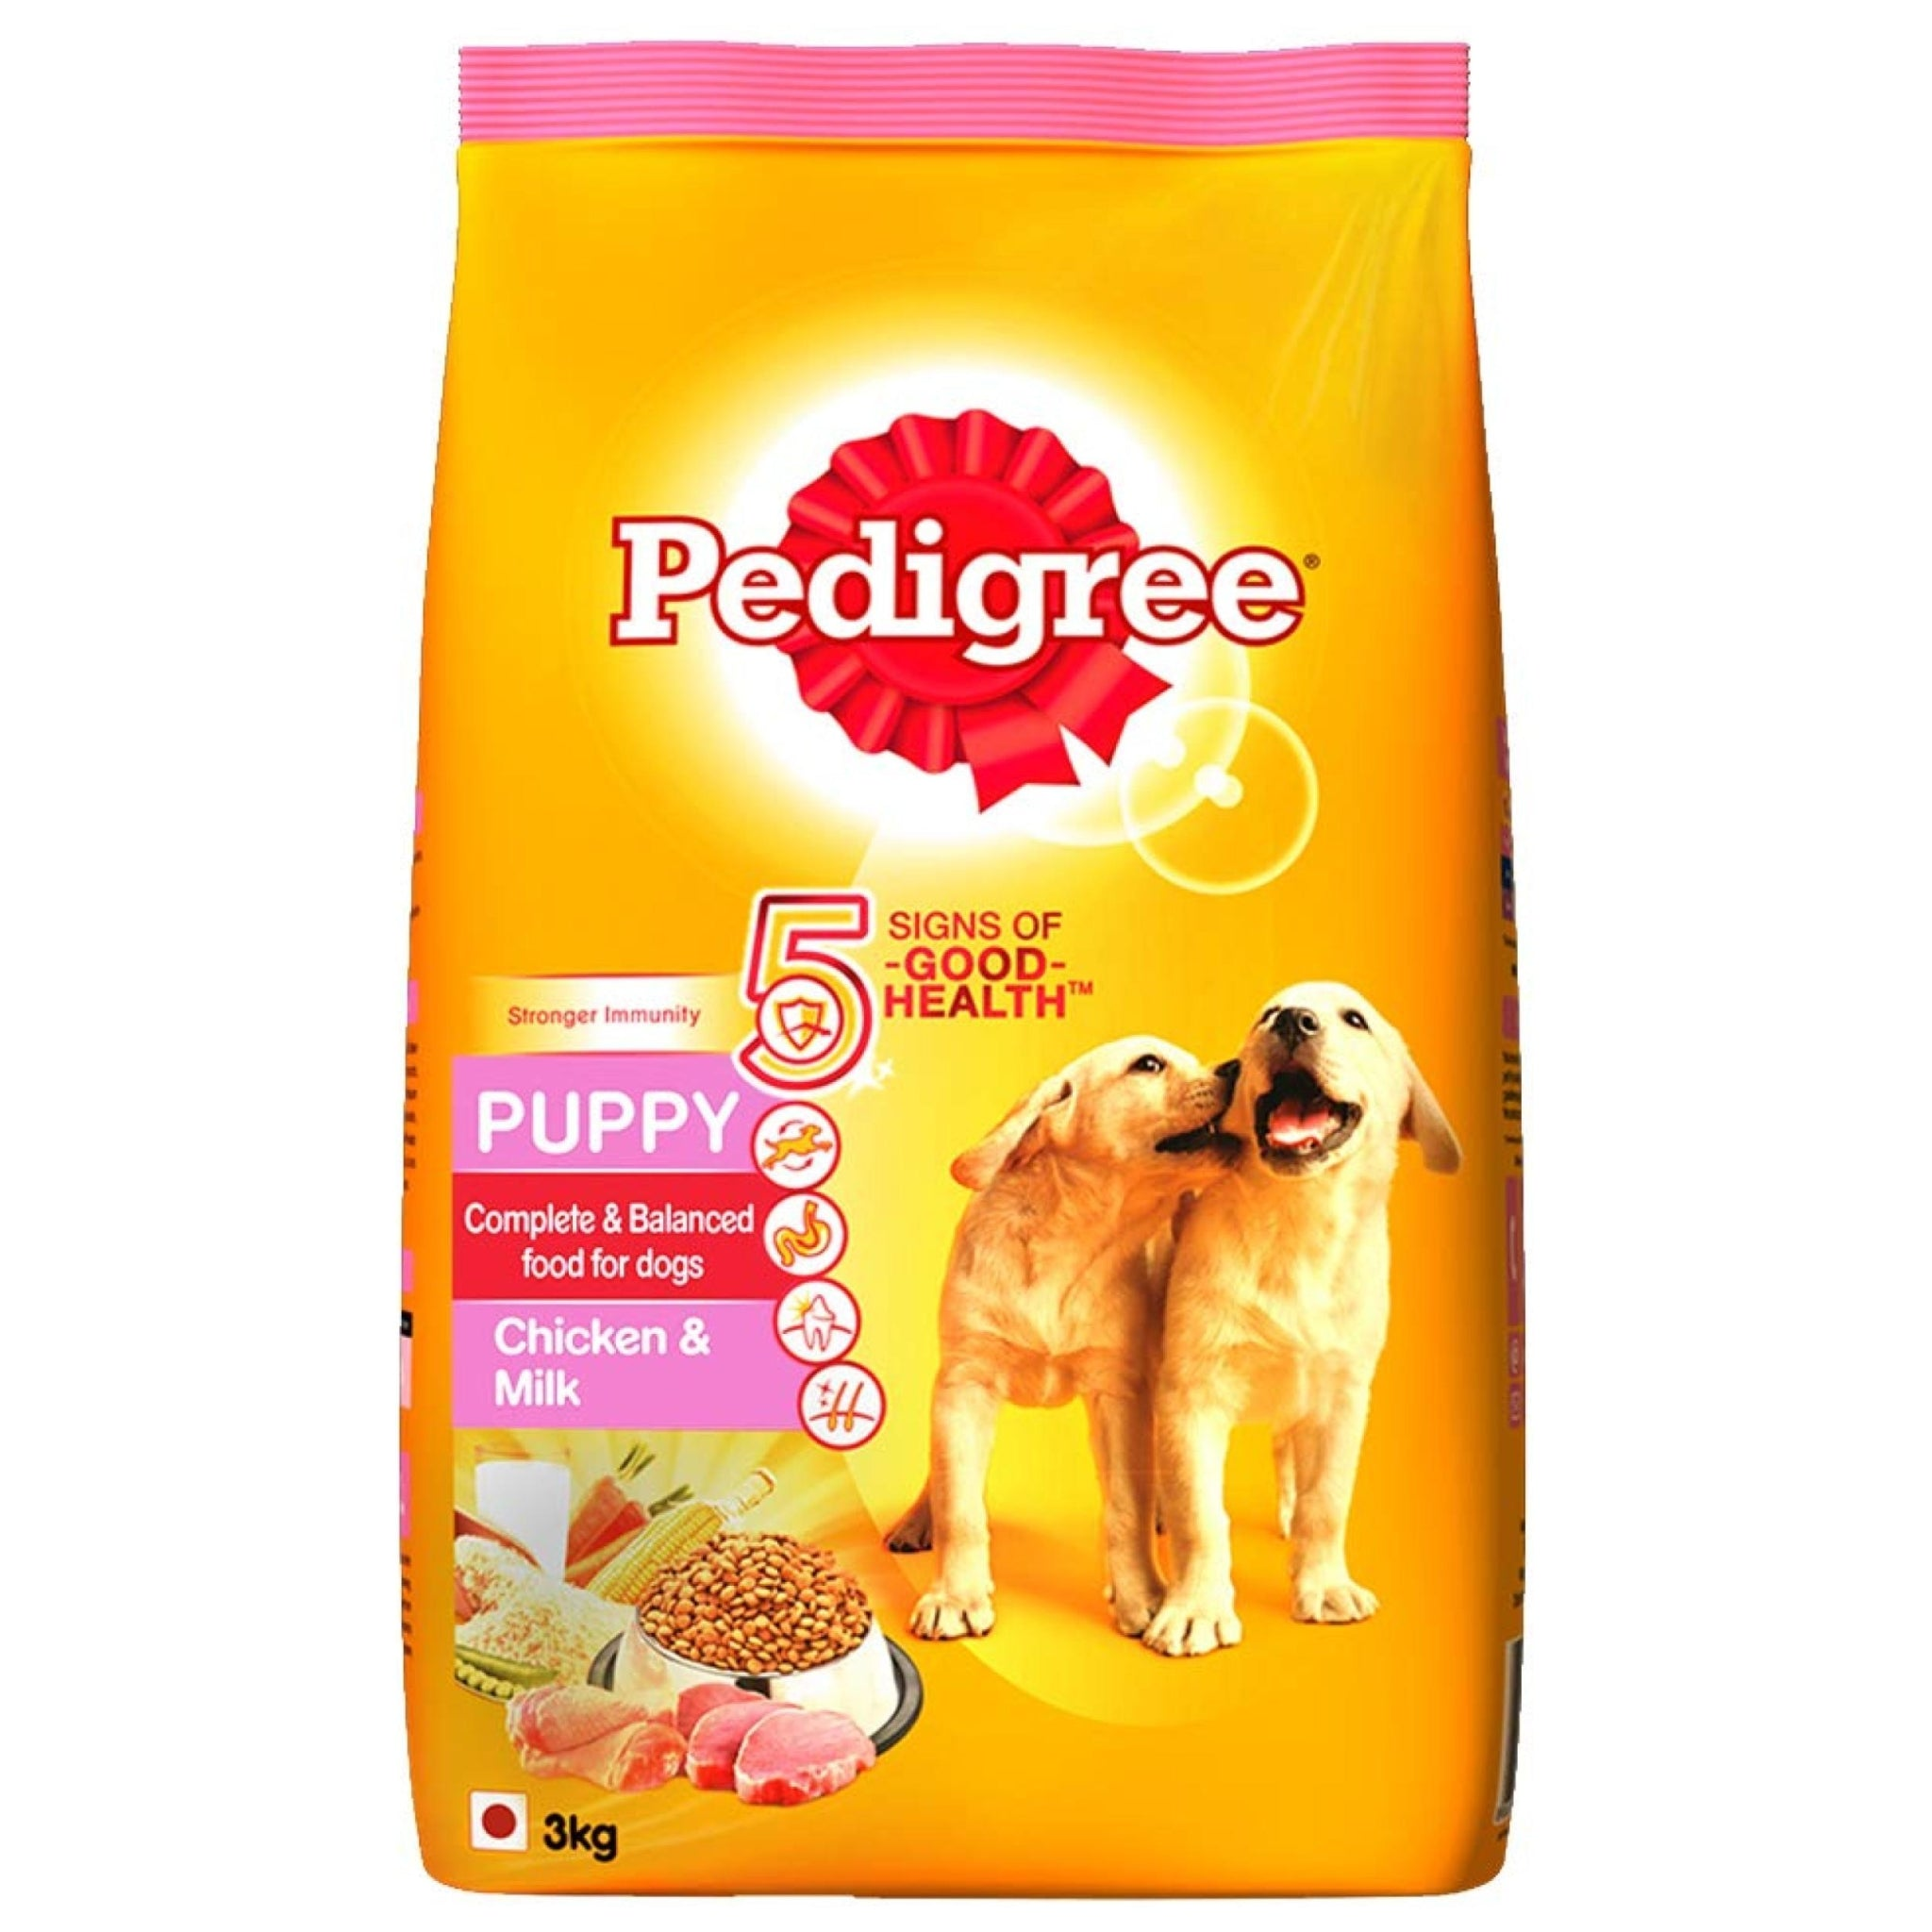 Pedigree Chicken And Milk Puppy Dog Food - Poochles